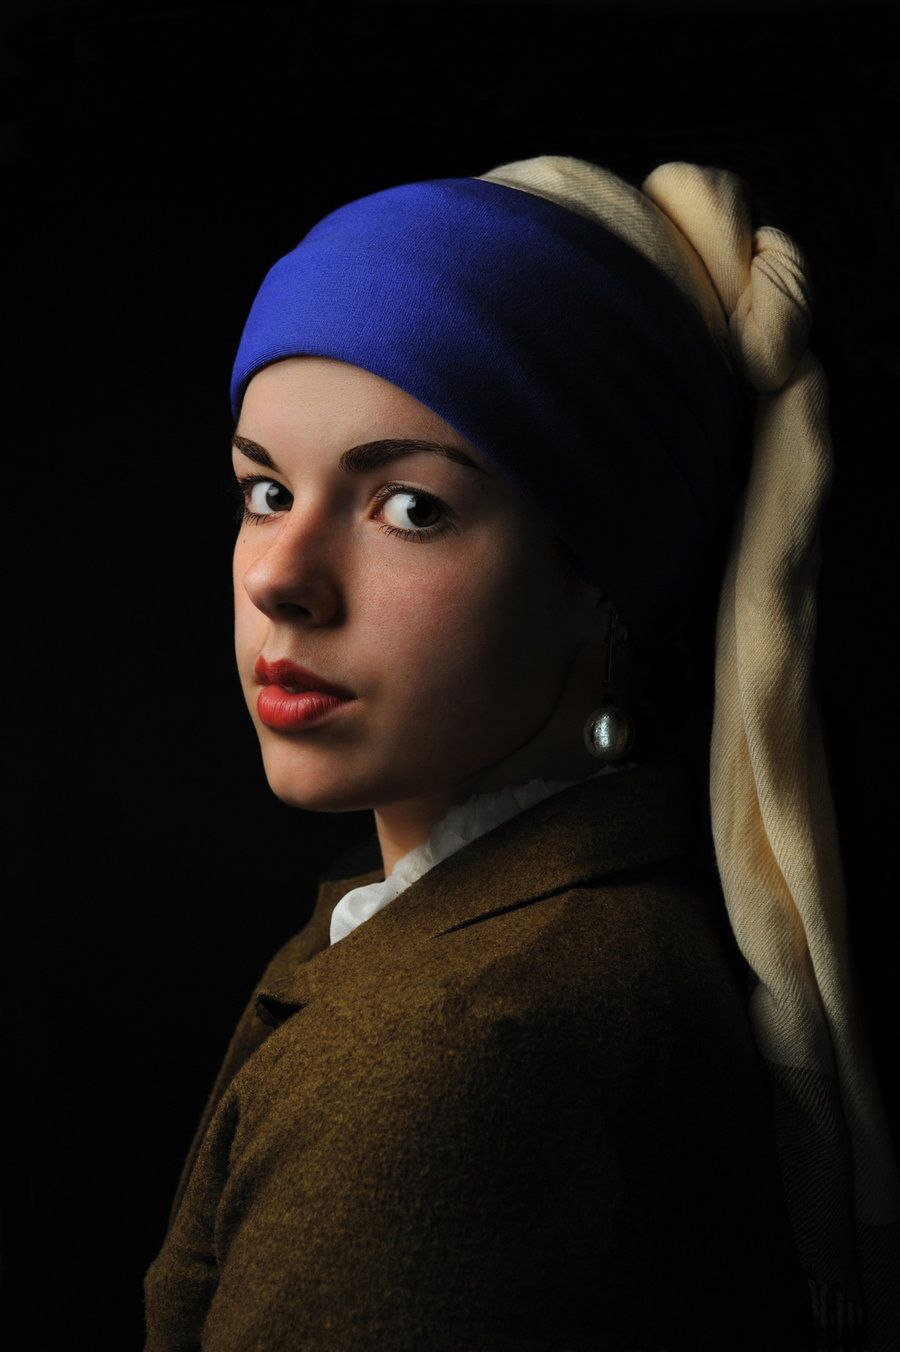 Girl With A Pearl Earring By Theraphotographyd4zum3og